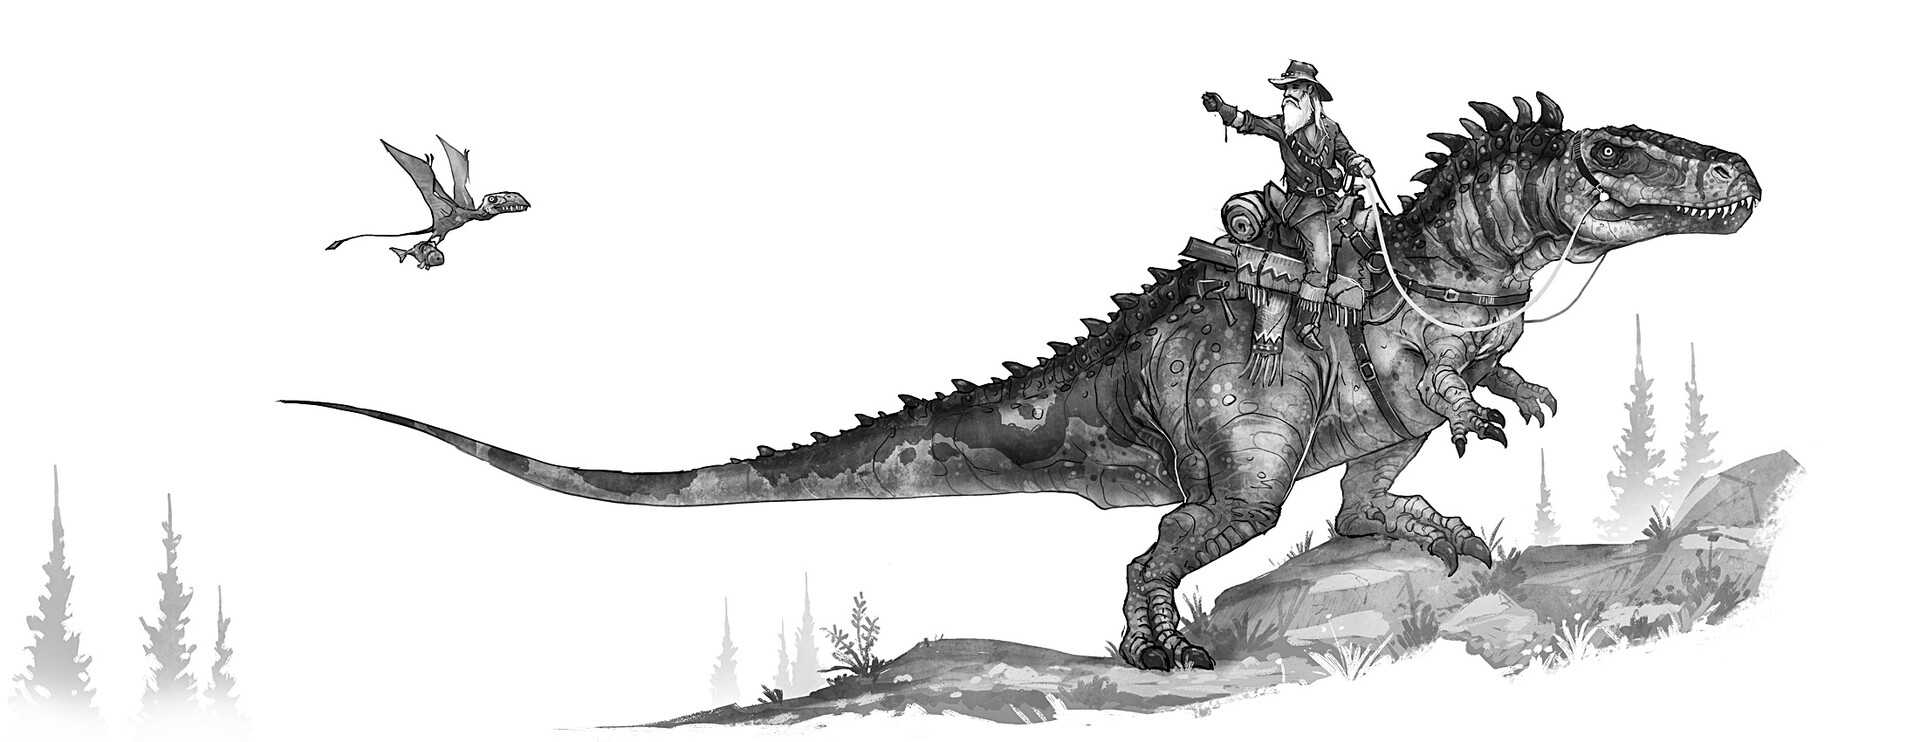 Shaun Keenan - Dinosaurs of the Wild West